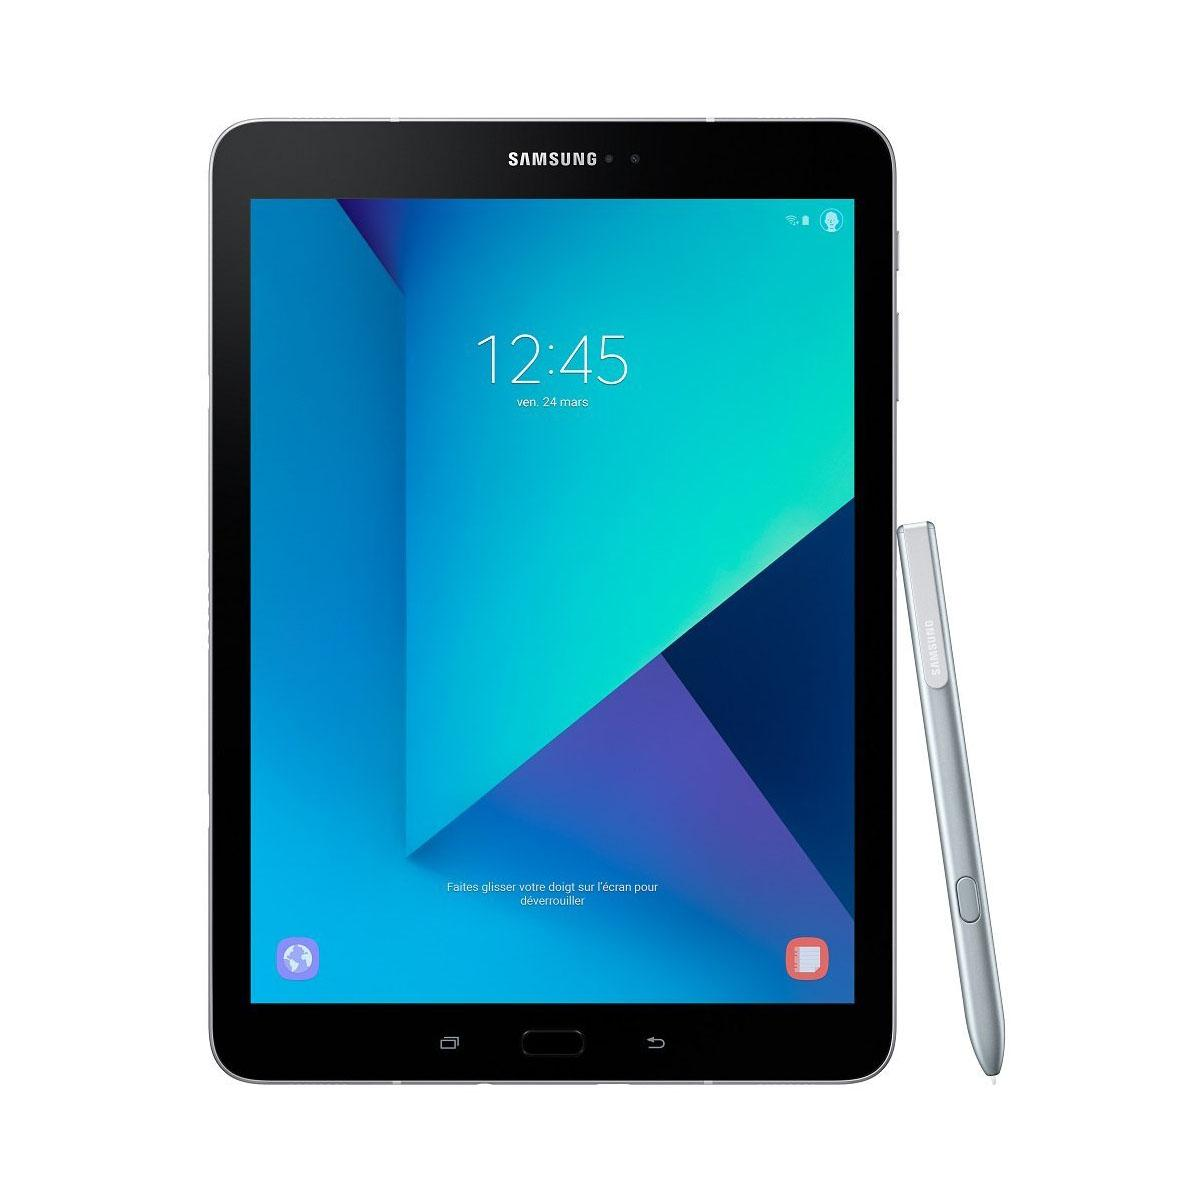 Tablet Samsung Galaxy Tab S3, Screen 9.7 (24,6 cm), WiFi silver color.